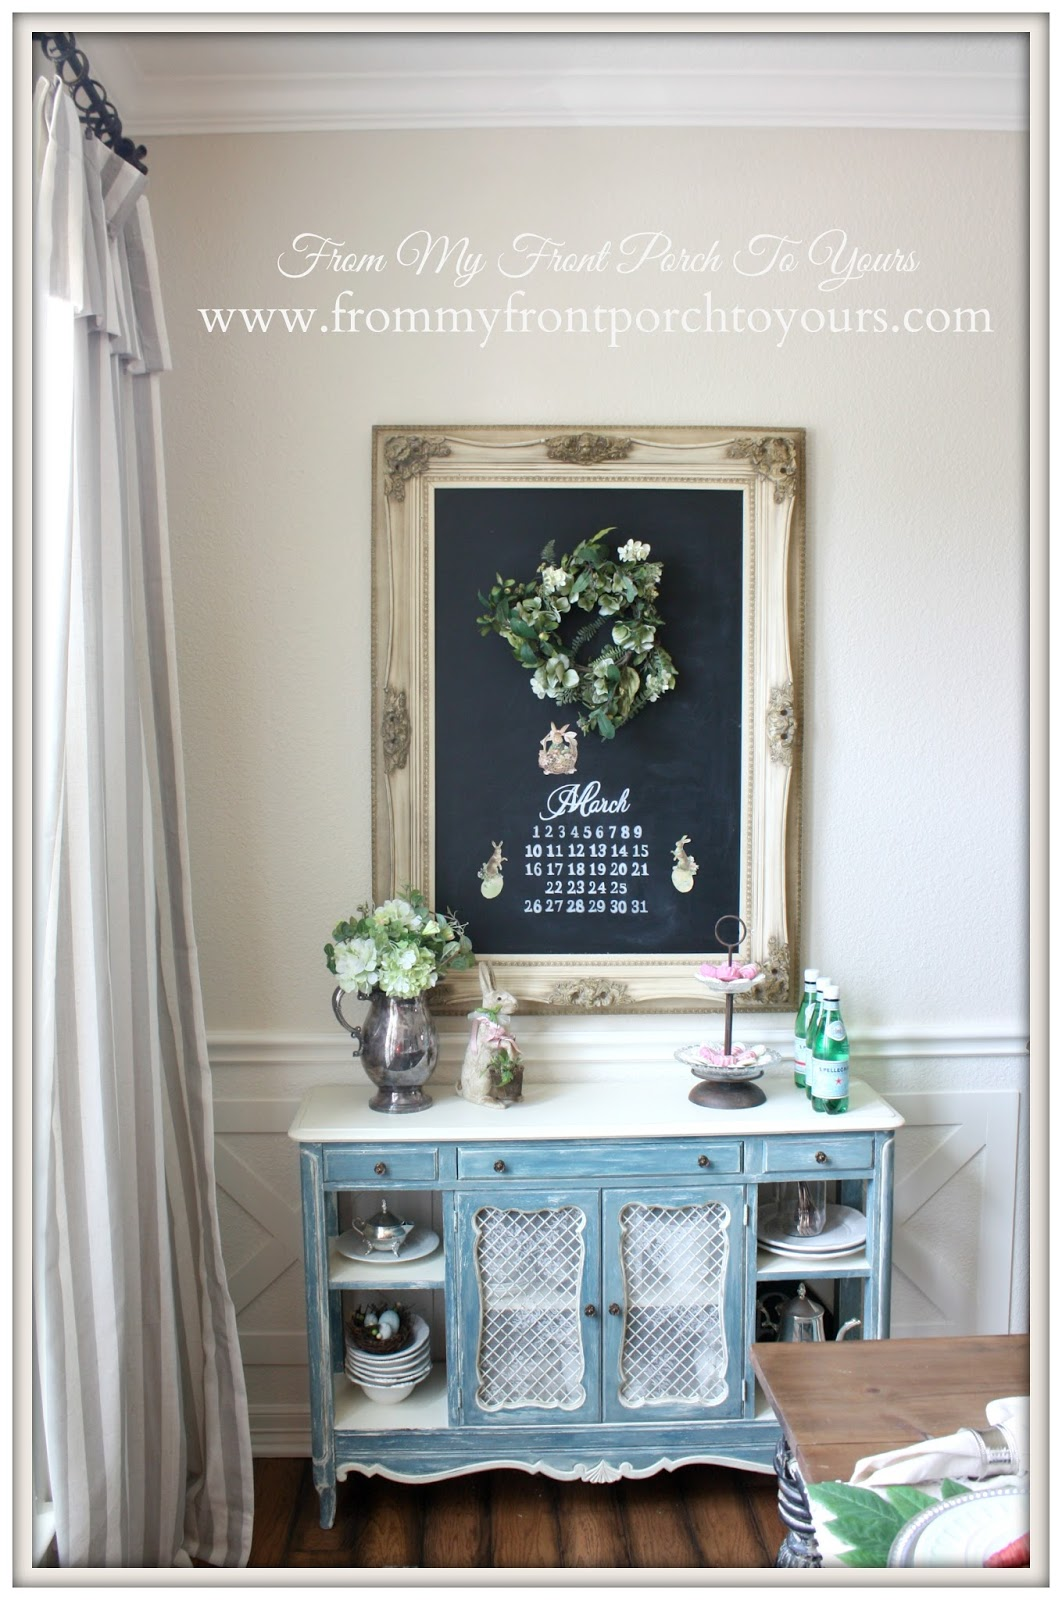 Spring Dining Room ChalkboardFrench Farmhouse Easter Dining Room-Vintage Side table- From My Front Porch To Yours